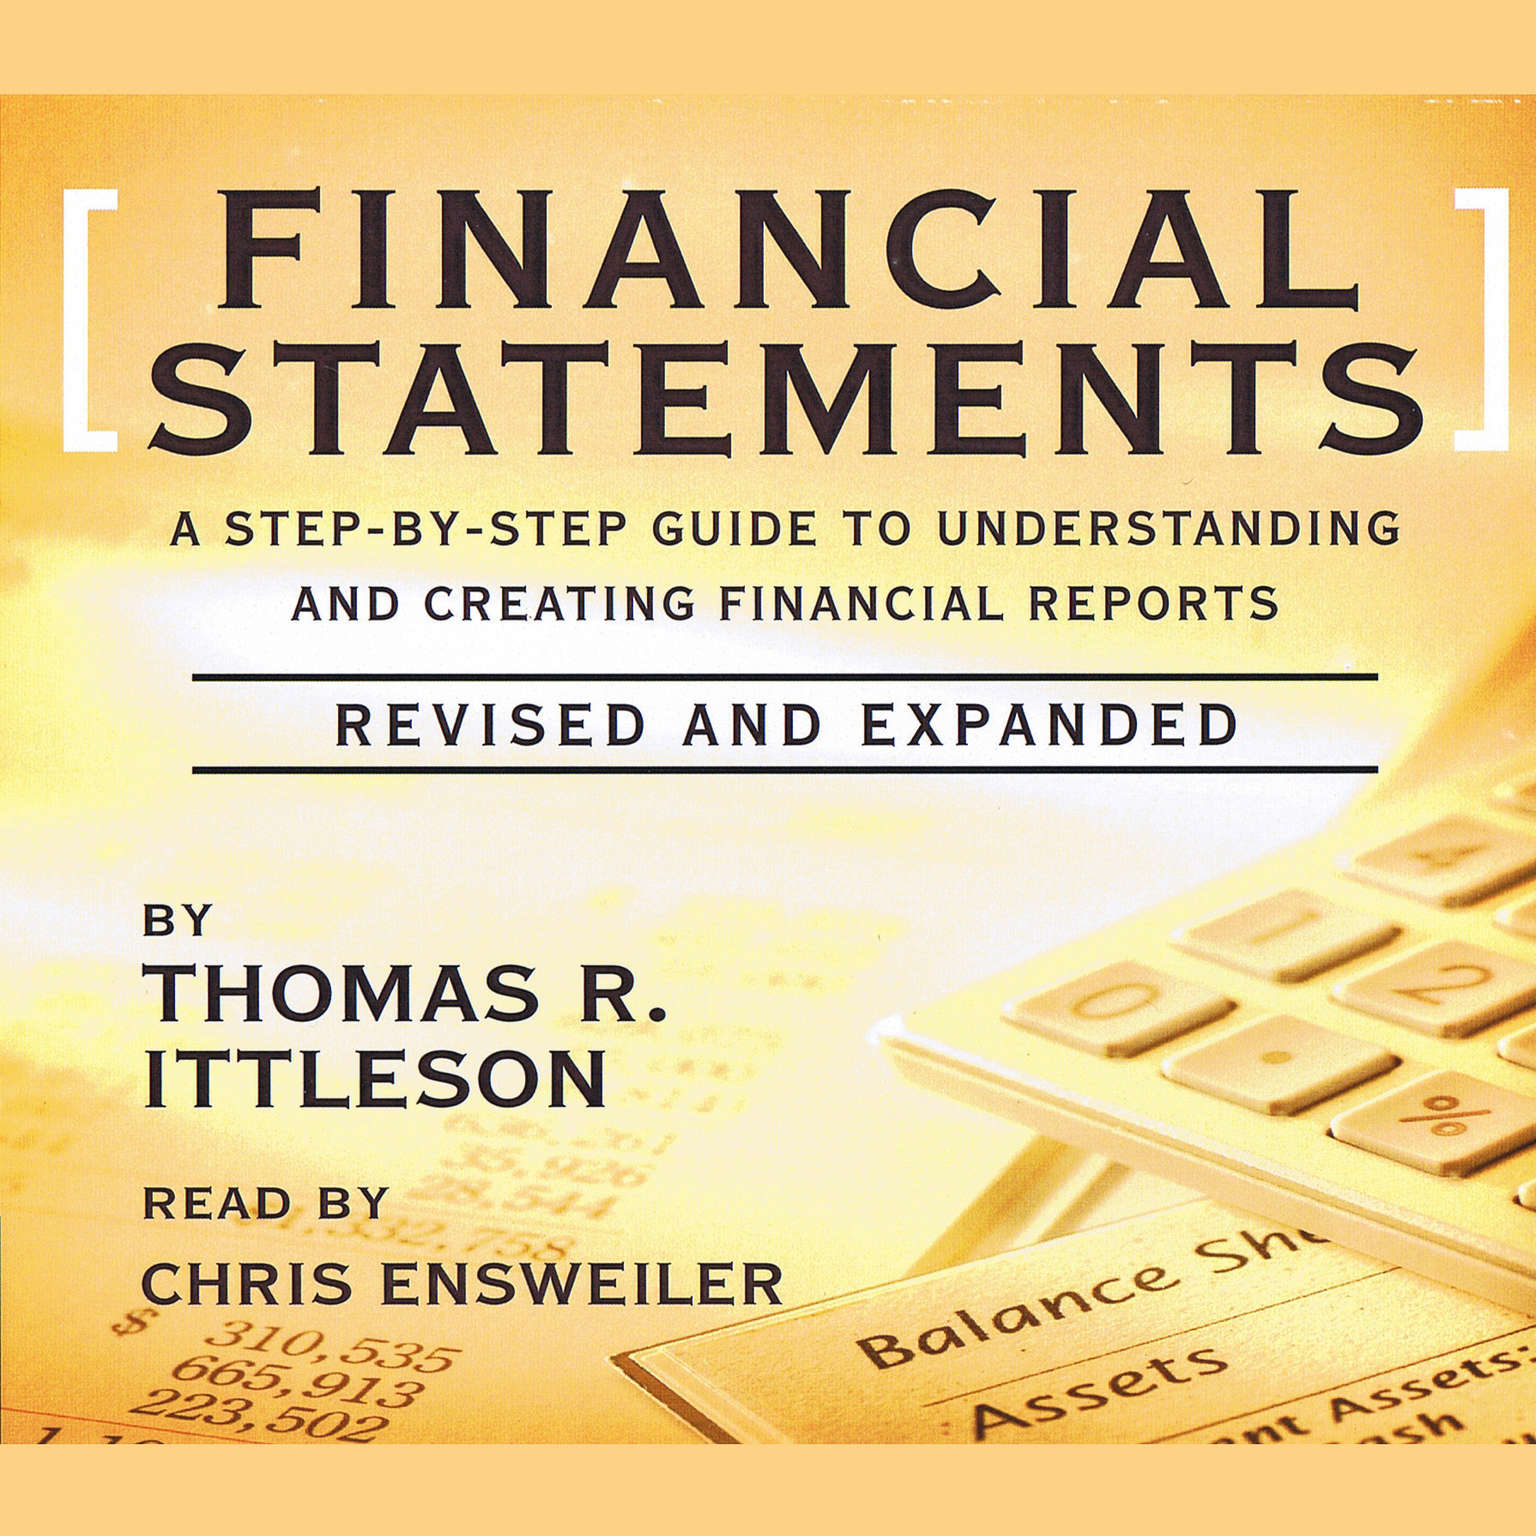 Printable Financial Statements: A Step-by-Step Guide to Understanding and Creating Financial Reports Audiobook Cover Art